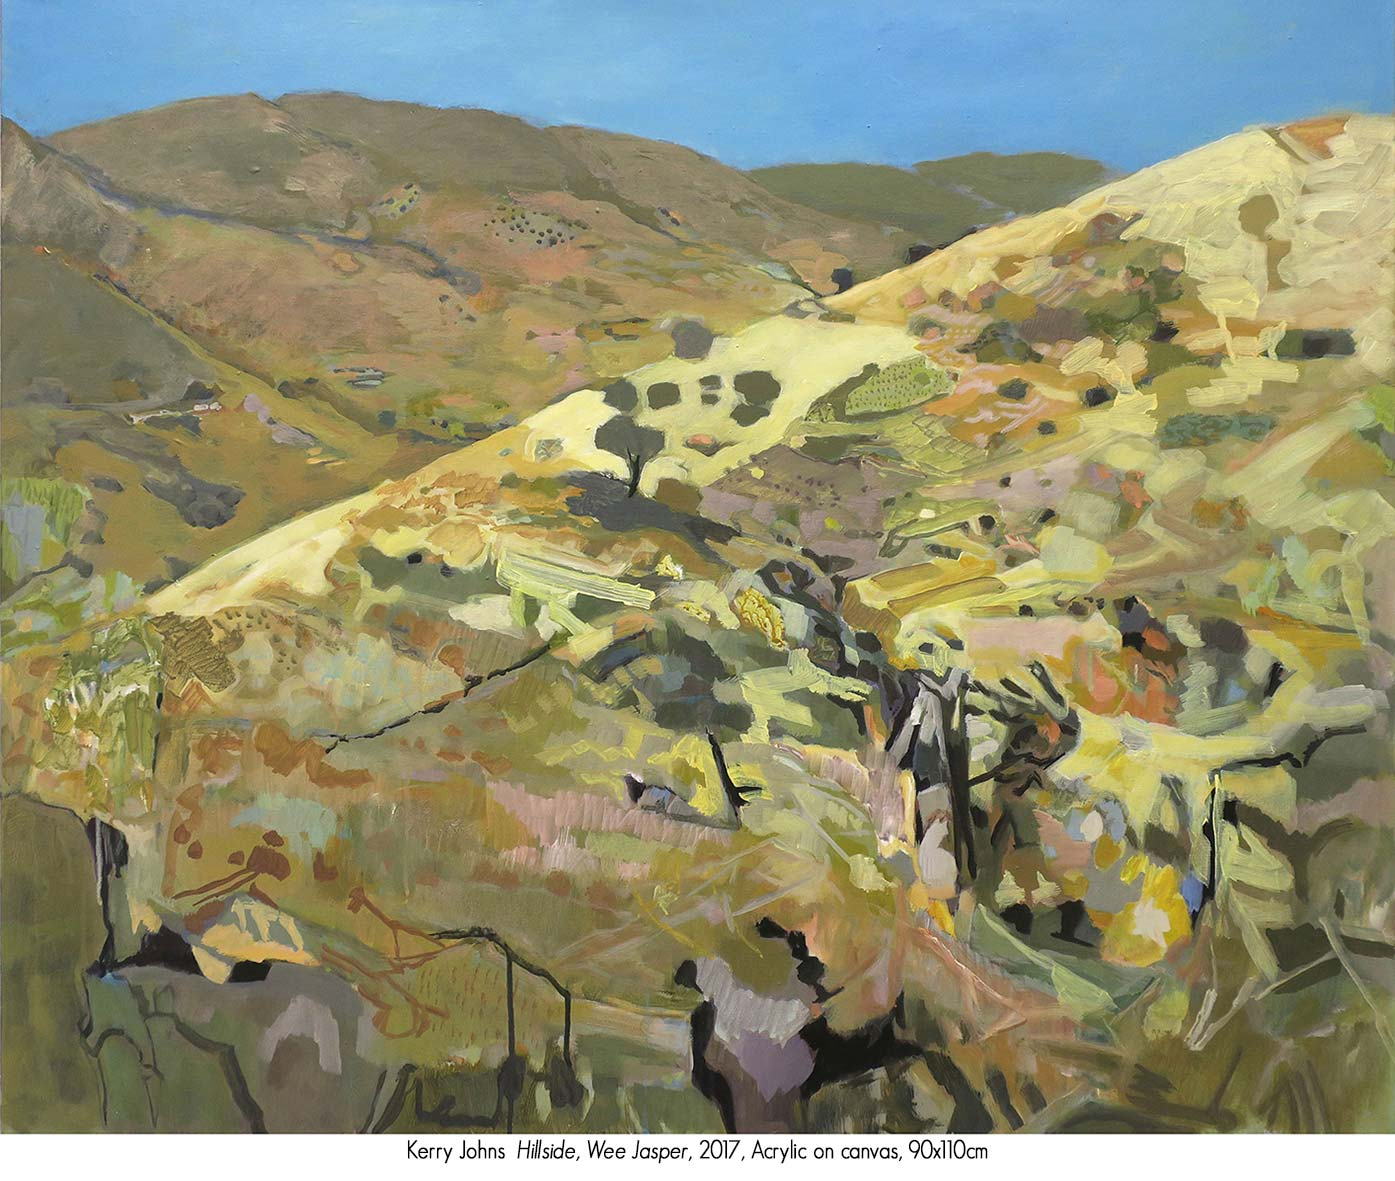 Kerry Johns: The Lie of the Land. Solo Exhibition Gallery Two, Artsite Gallery 05 - 27 August 2017